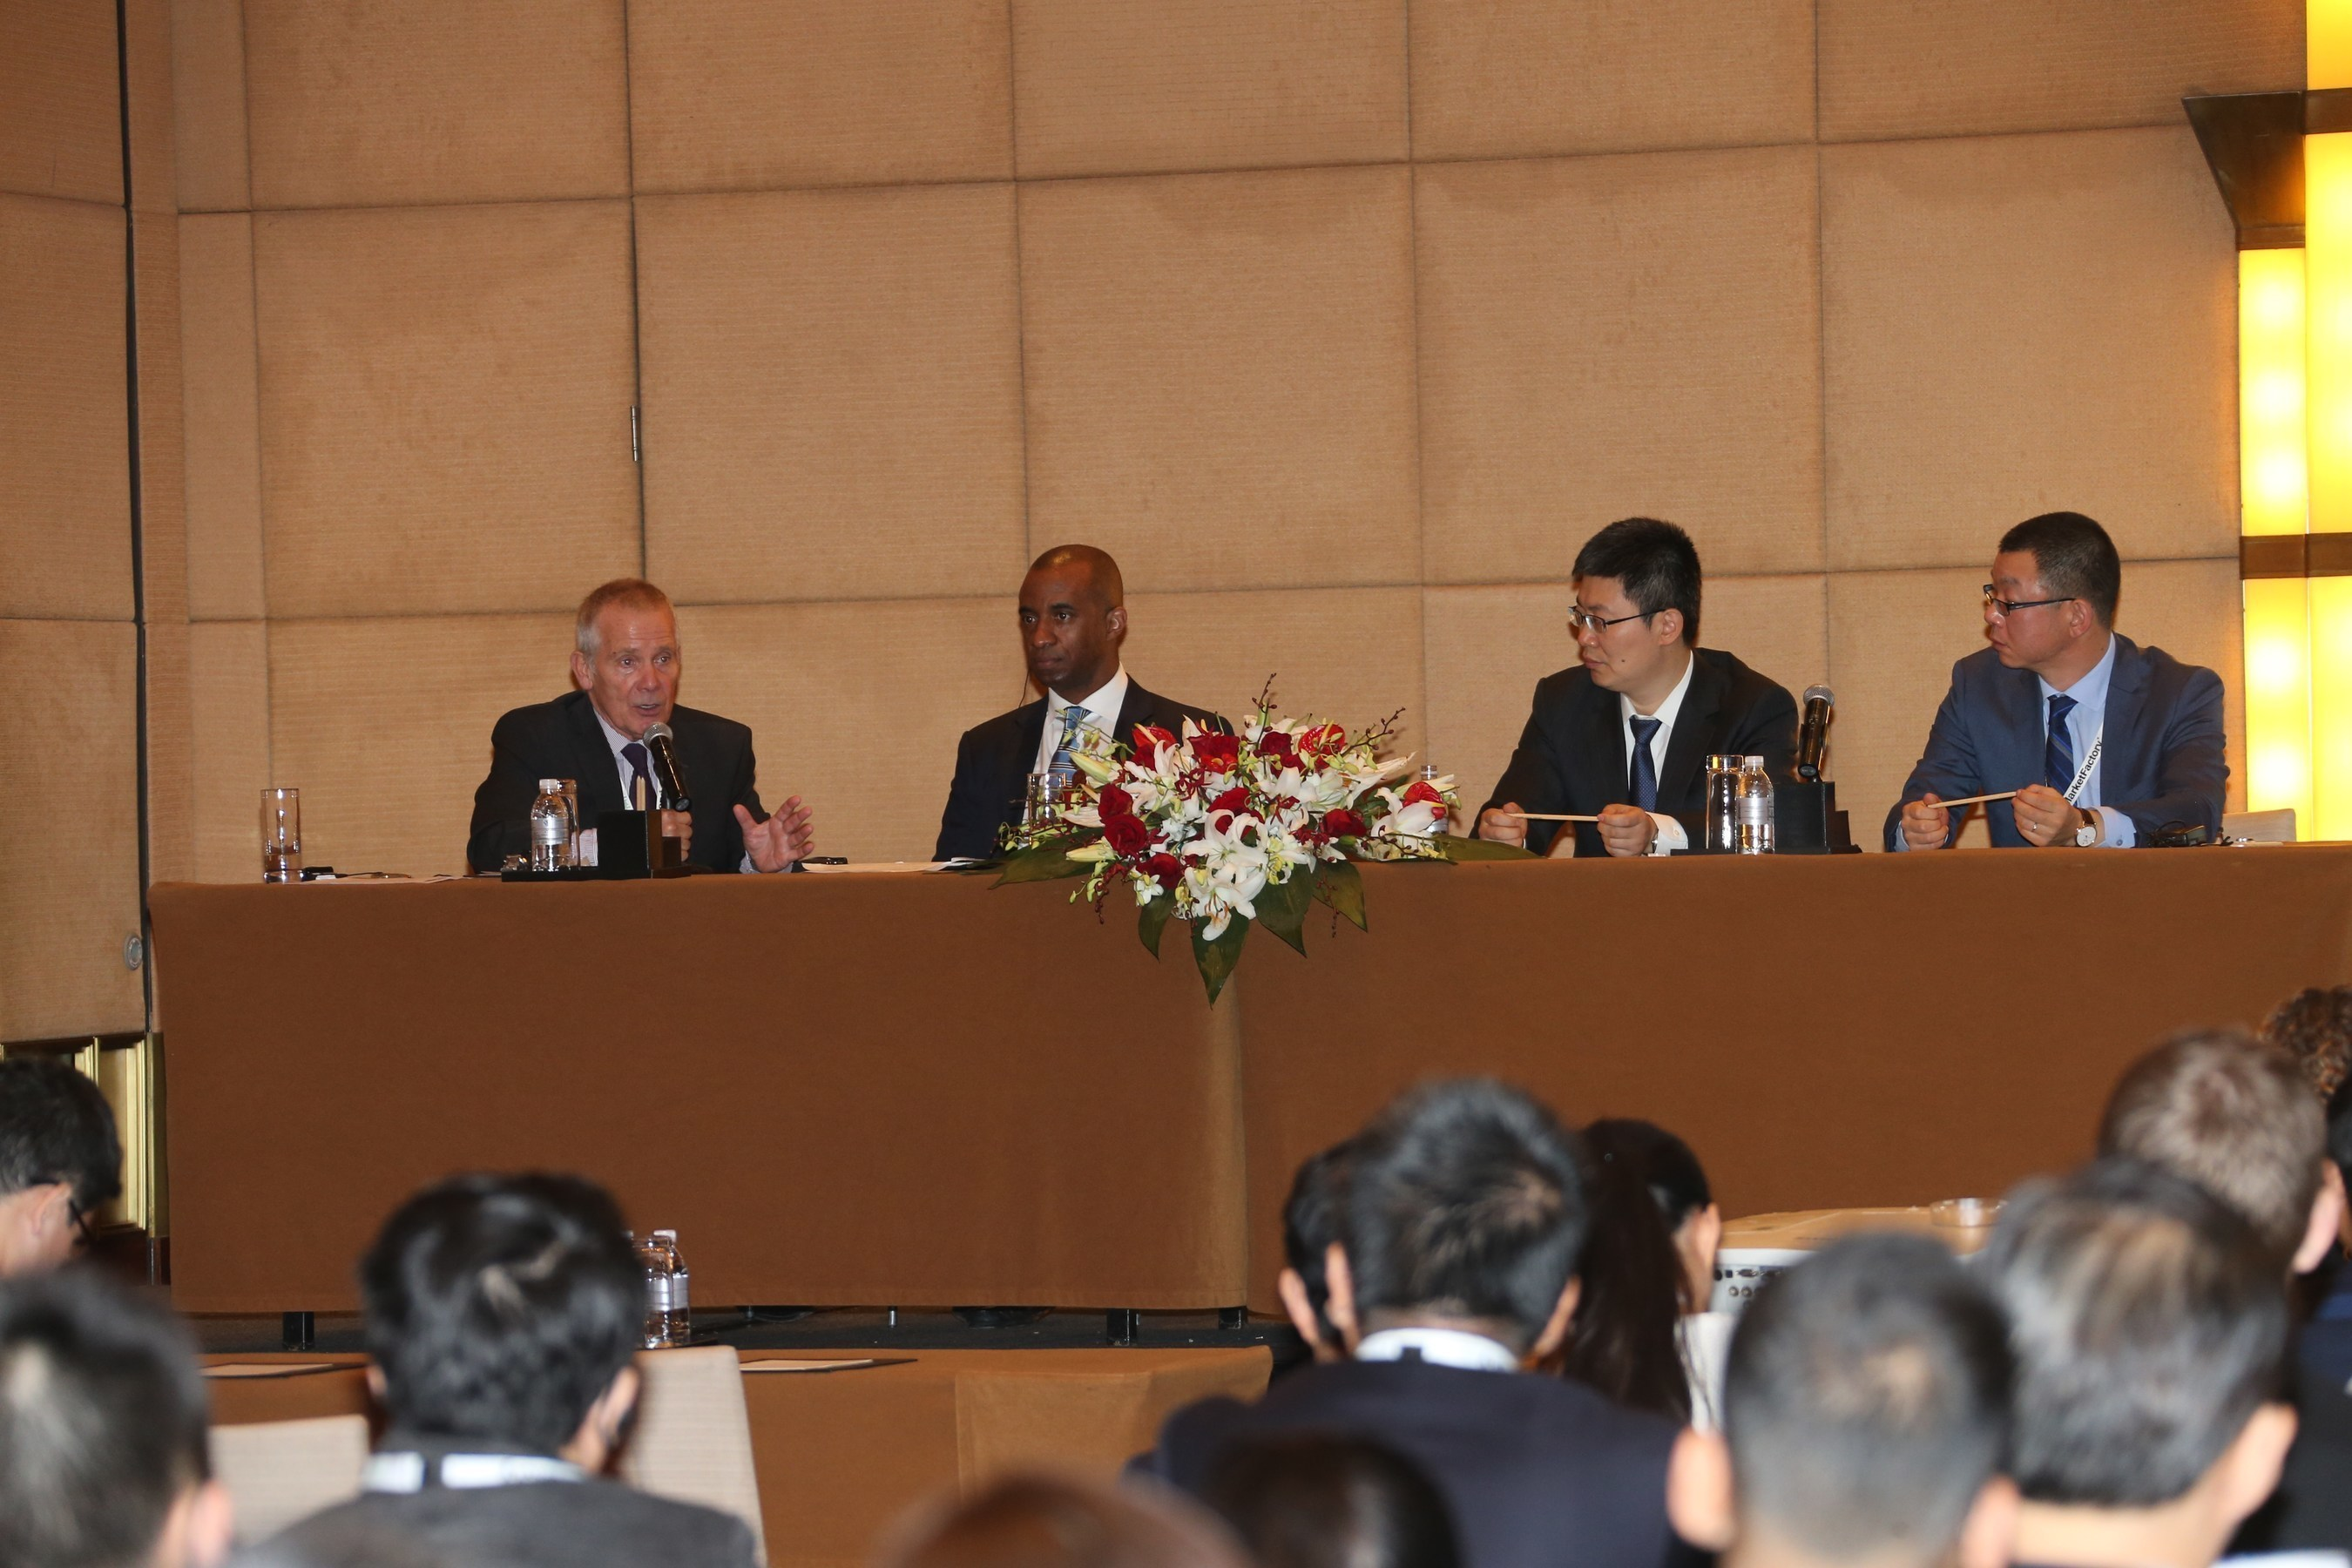 Shawn Baldwin (2nd from left), global investments advisor and Chairman of AIA Group, shares his views on the various factors that could potentially impact Chinese currency and monetary policy at Profit & Loss Shanghai 2015 on a panel with (from left) David Clark, Chairman, Wholesale Markets Brokers Association; Zhang Shengju, General Manager, China Foreign Exchange Trade System; and Fu Qing, Head of FX Trading, Financial Markets, Standard Chartered Bank, China.